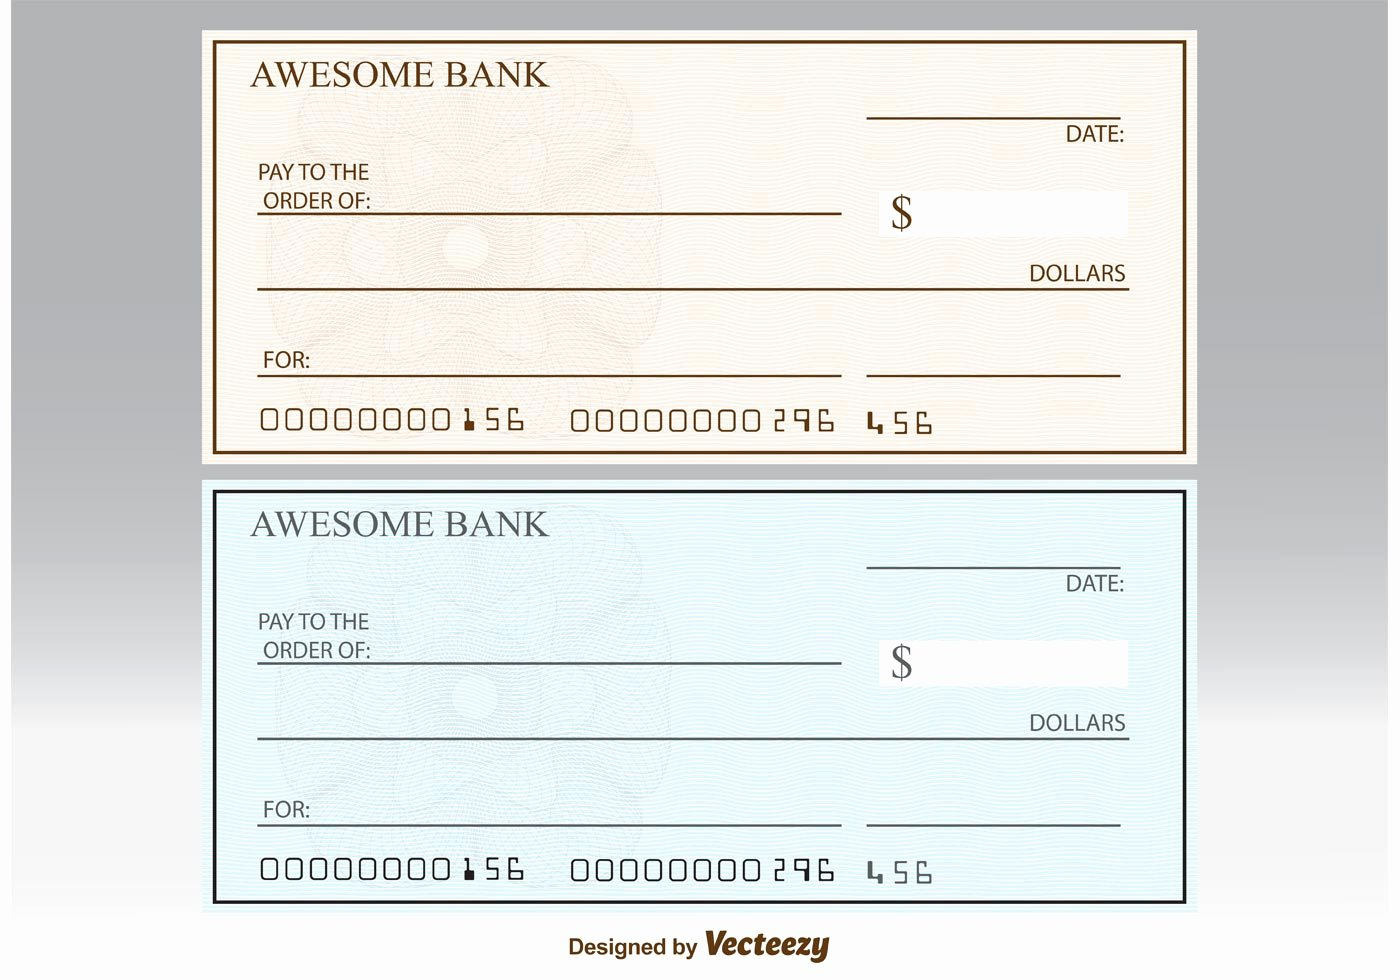 Picture Of A Blank Check Best Of Blank Check Vectors Download Free Vectors Clipart Graphics & Vector Art